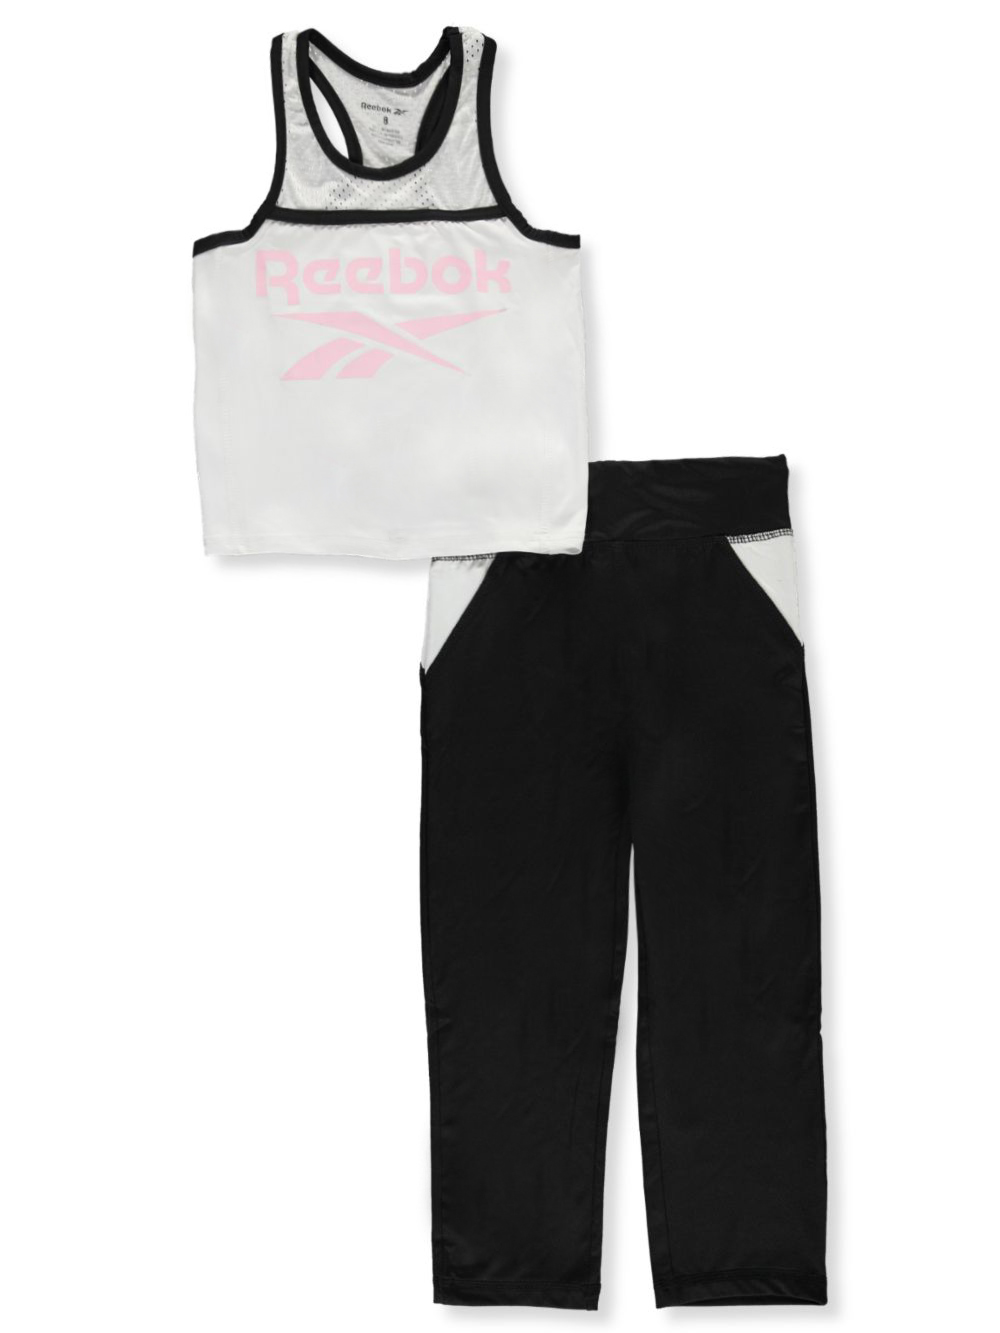 Size 8-10 Pant Sets for Girls